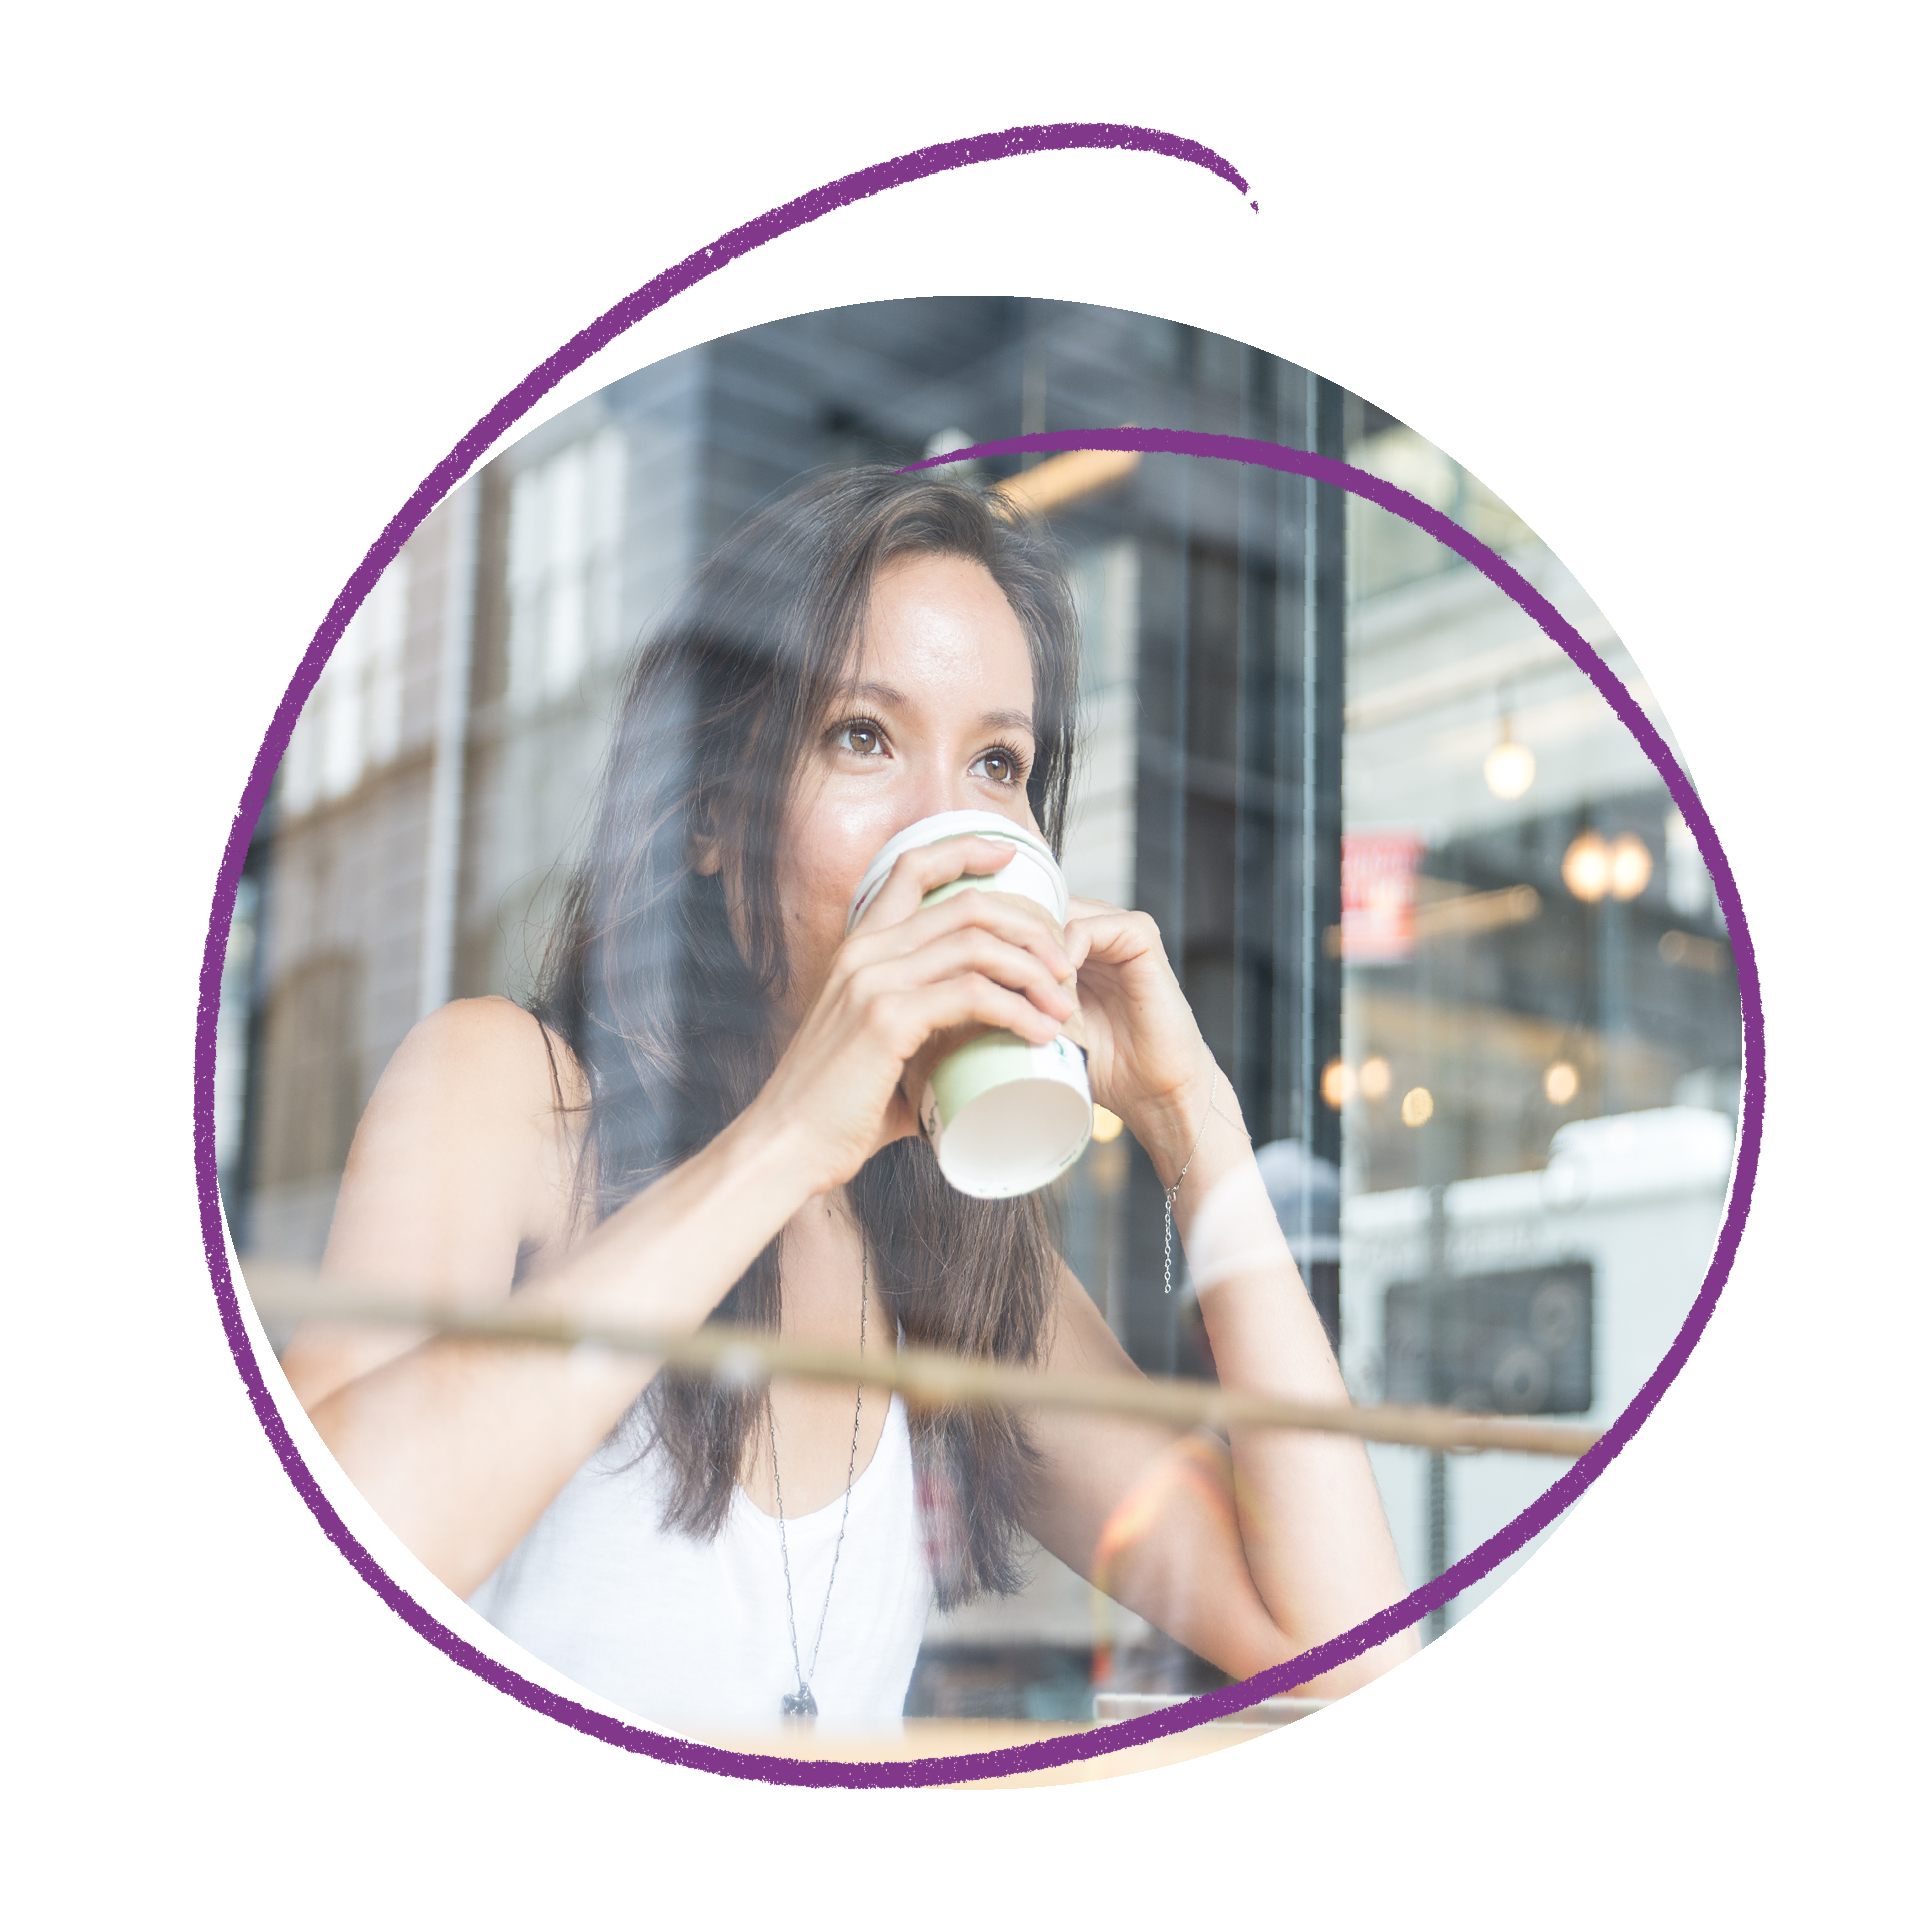 Photo of a woman looking out a window drinking coffee out of a take away cup.